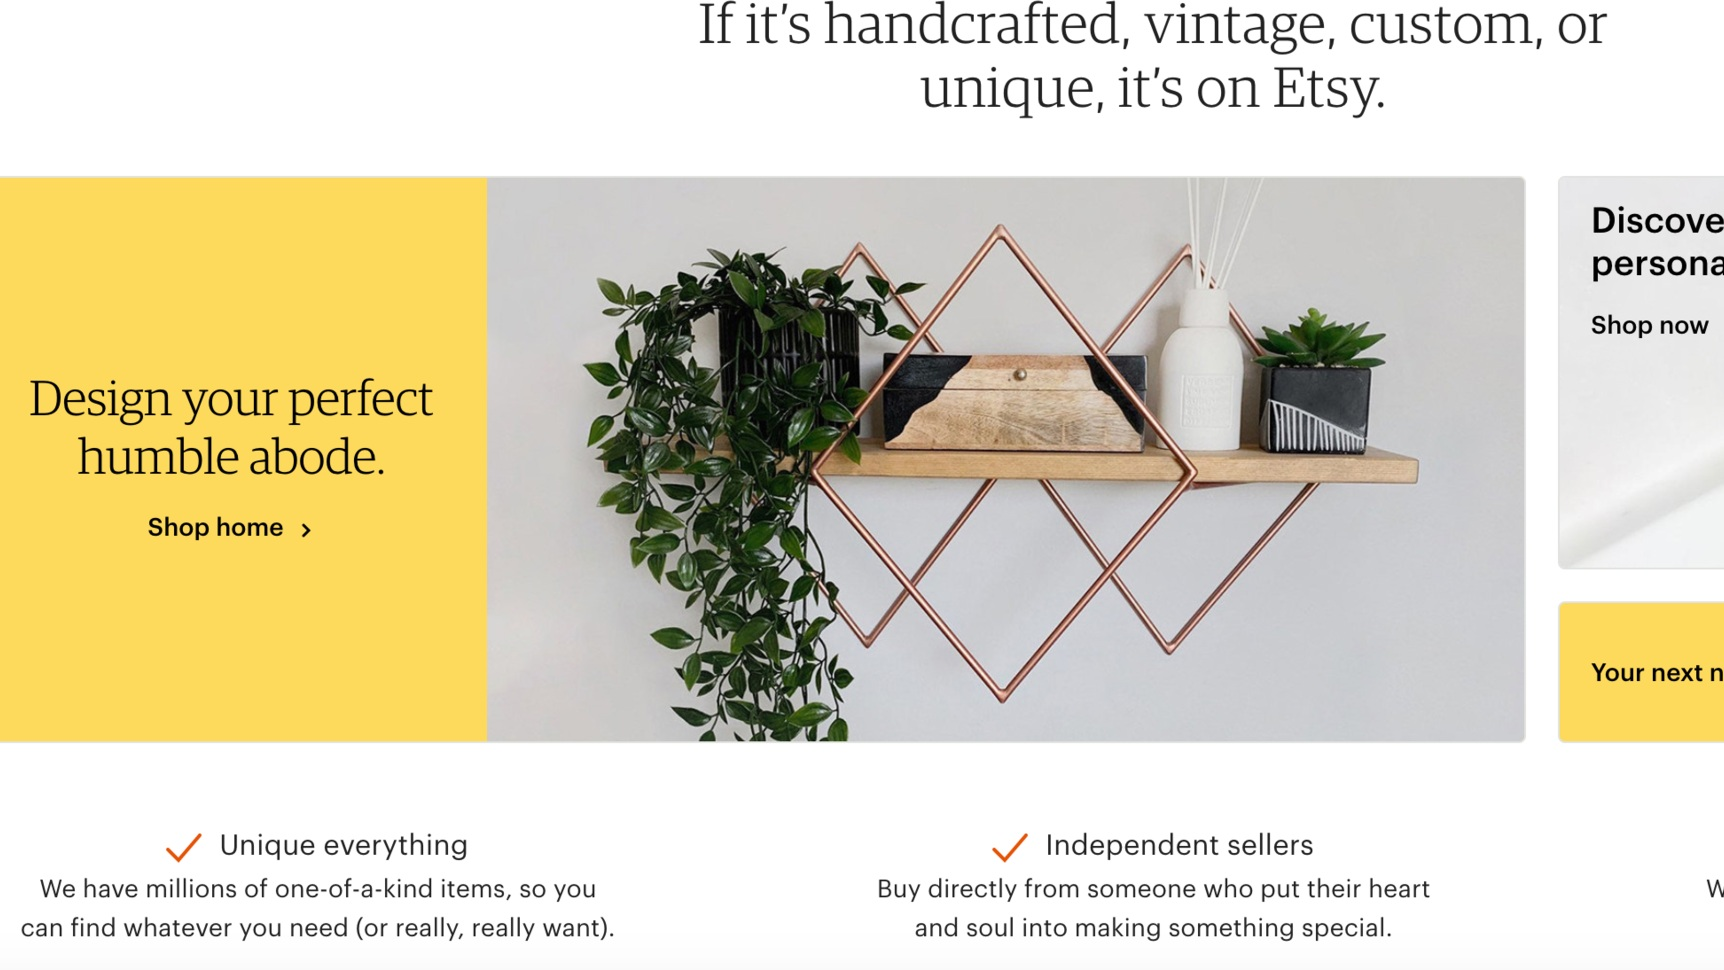 Etsy - You may know Etsy for its handmade goods sellers, but Etsy also has 1,000s of vintage item sellers. Reselling on the site is only allowed in the vintage and craft supplies categories so you won't see any current items here.